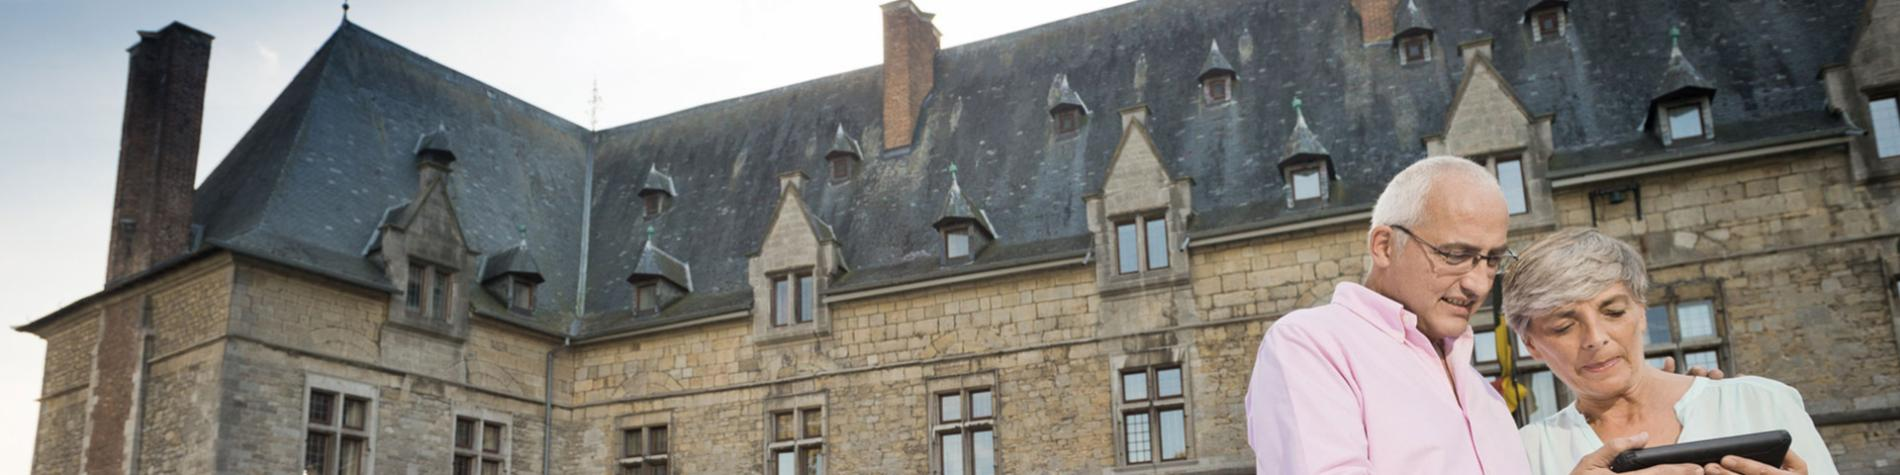 Chateau - Chimay